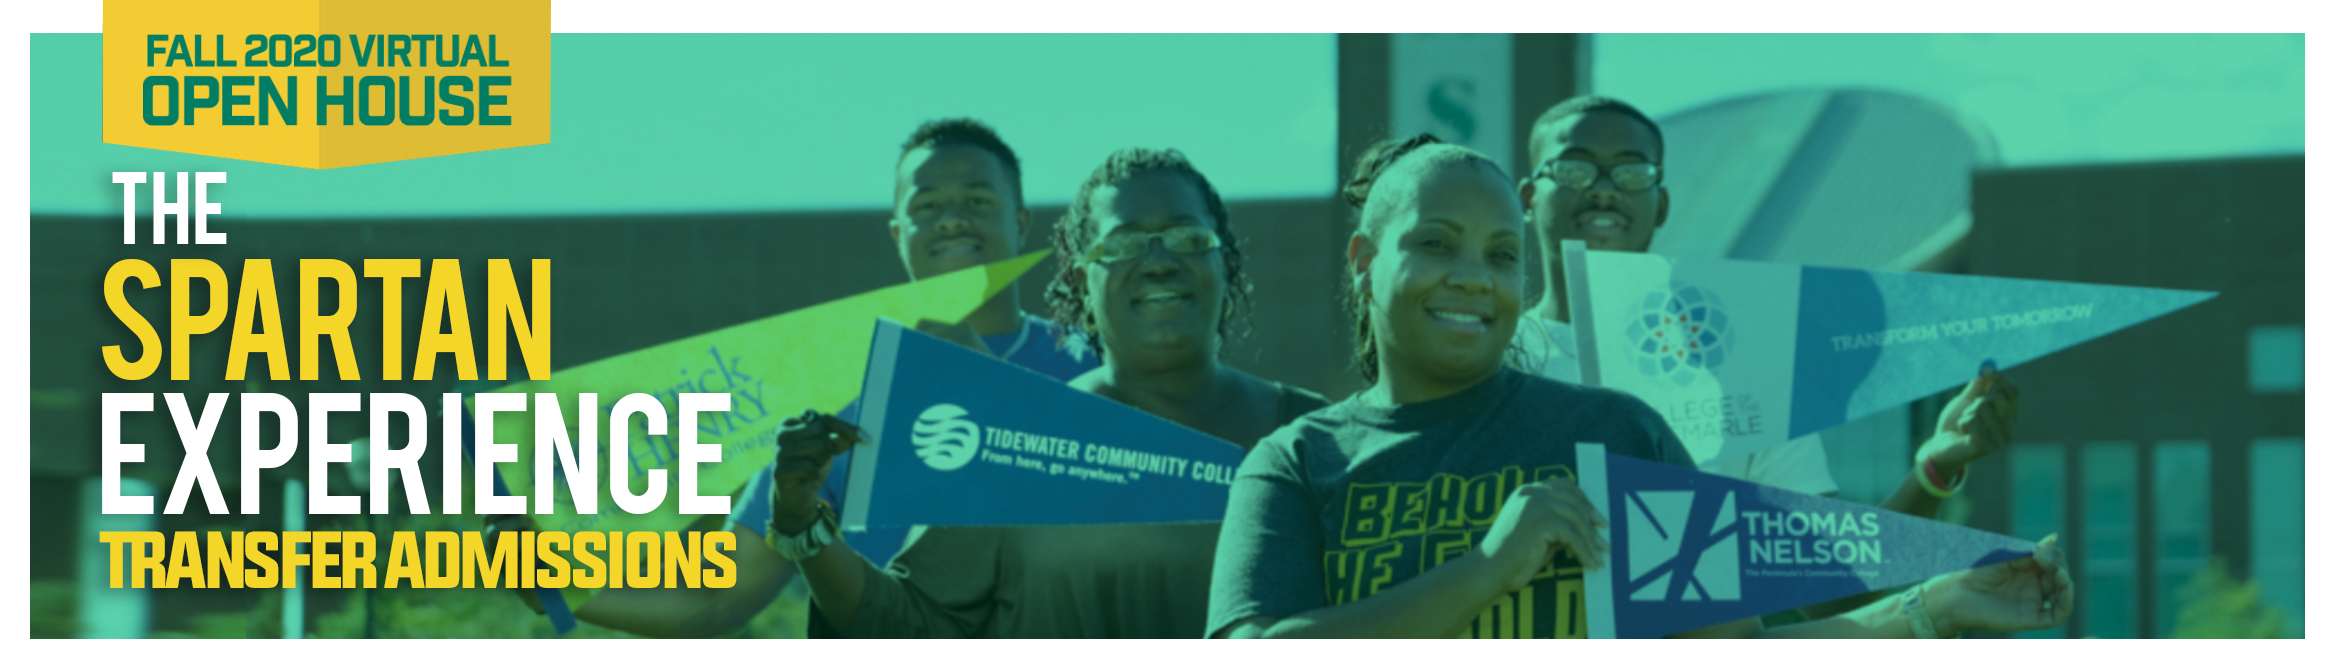 Fall 2020 virtual open house • the spartan experience • transfer admissions